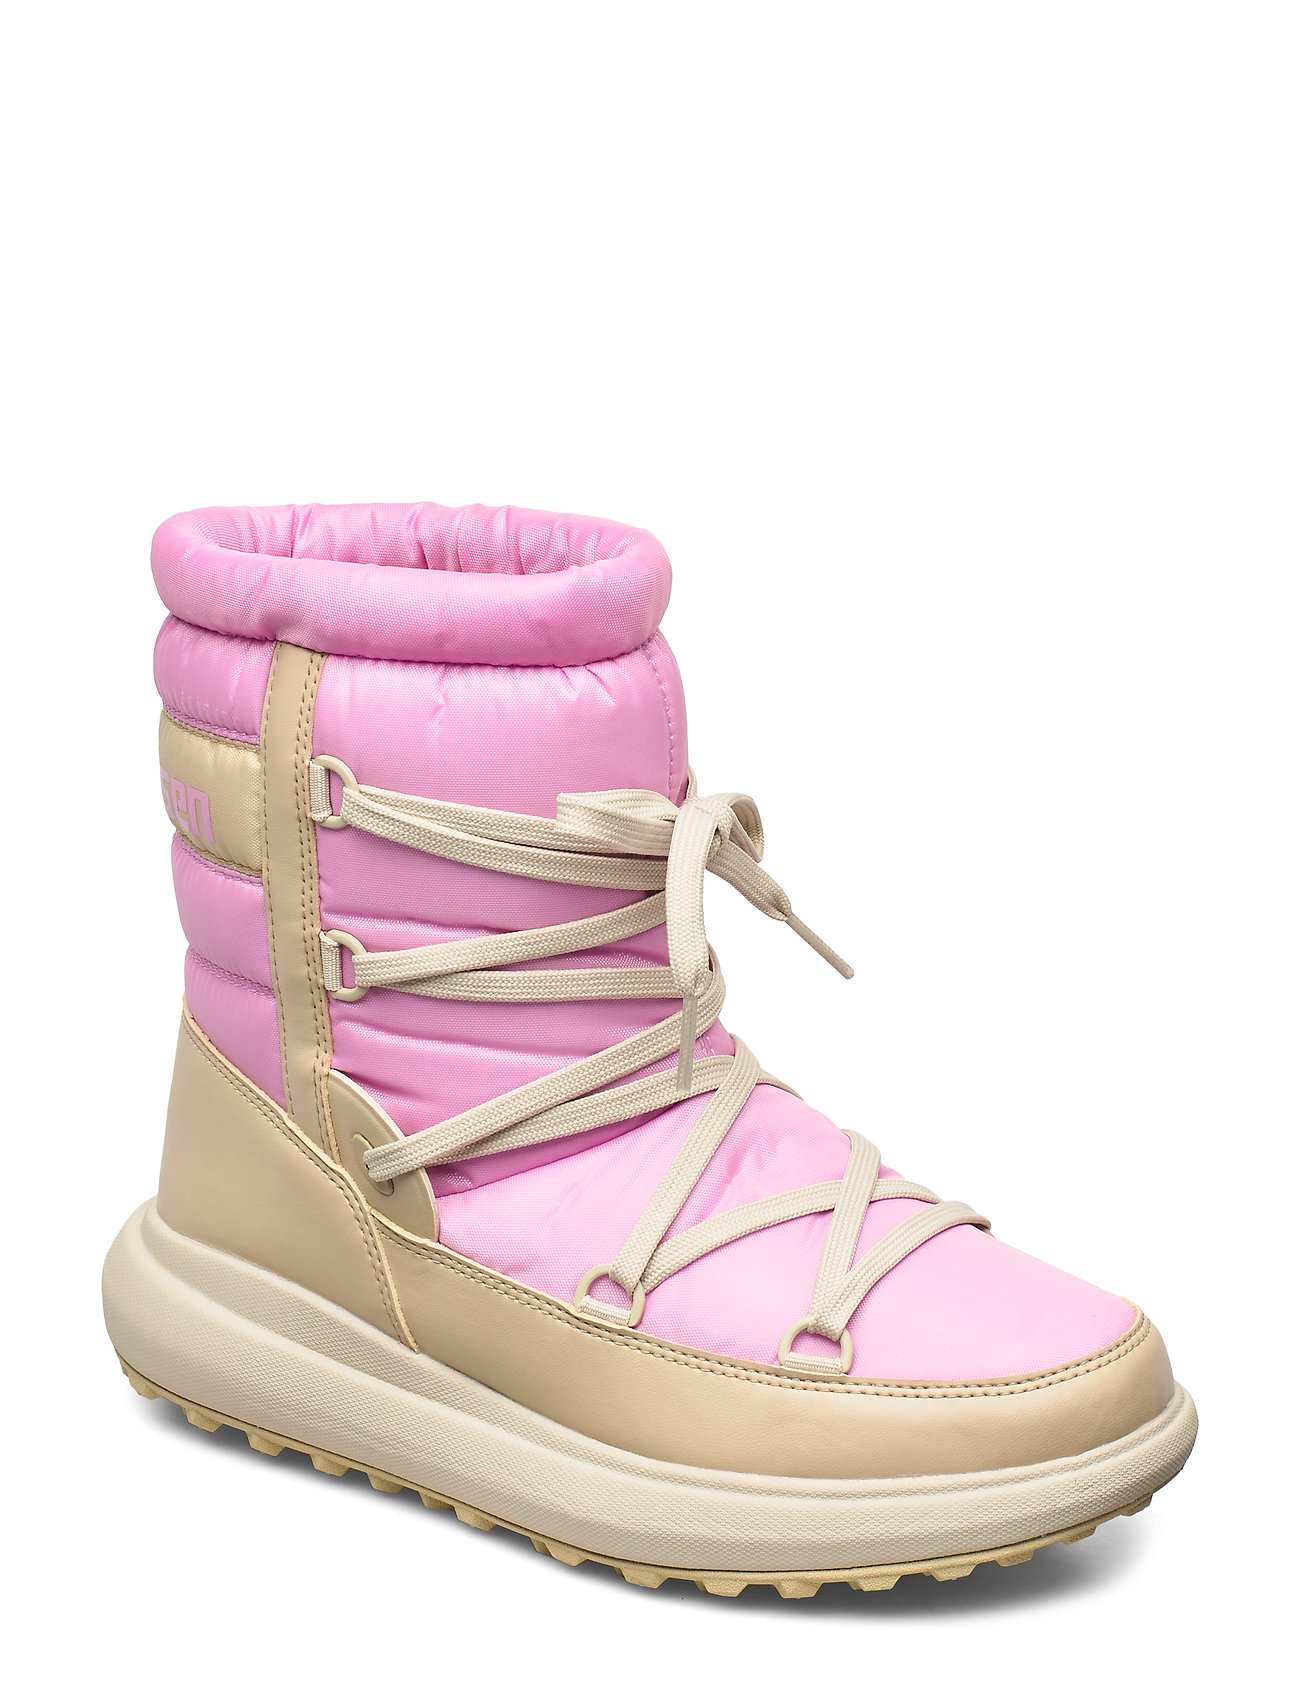 HELLY HANSEN W Isolabella Court Heritage Shoes Boots Ankle Boots Ankle Boots Flat Heel Pink HELLY HANSEN